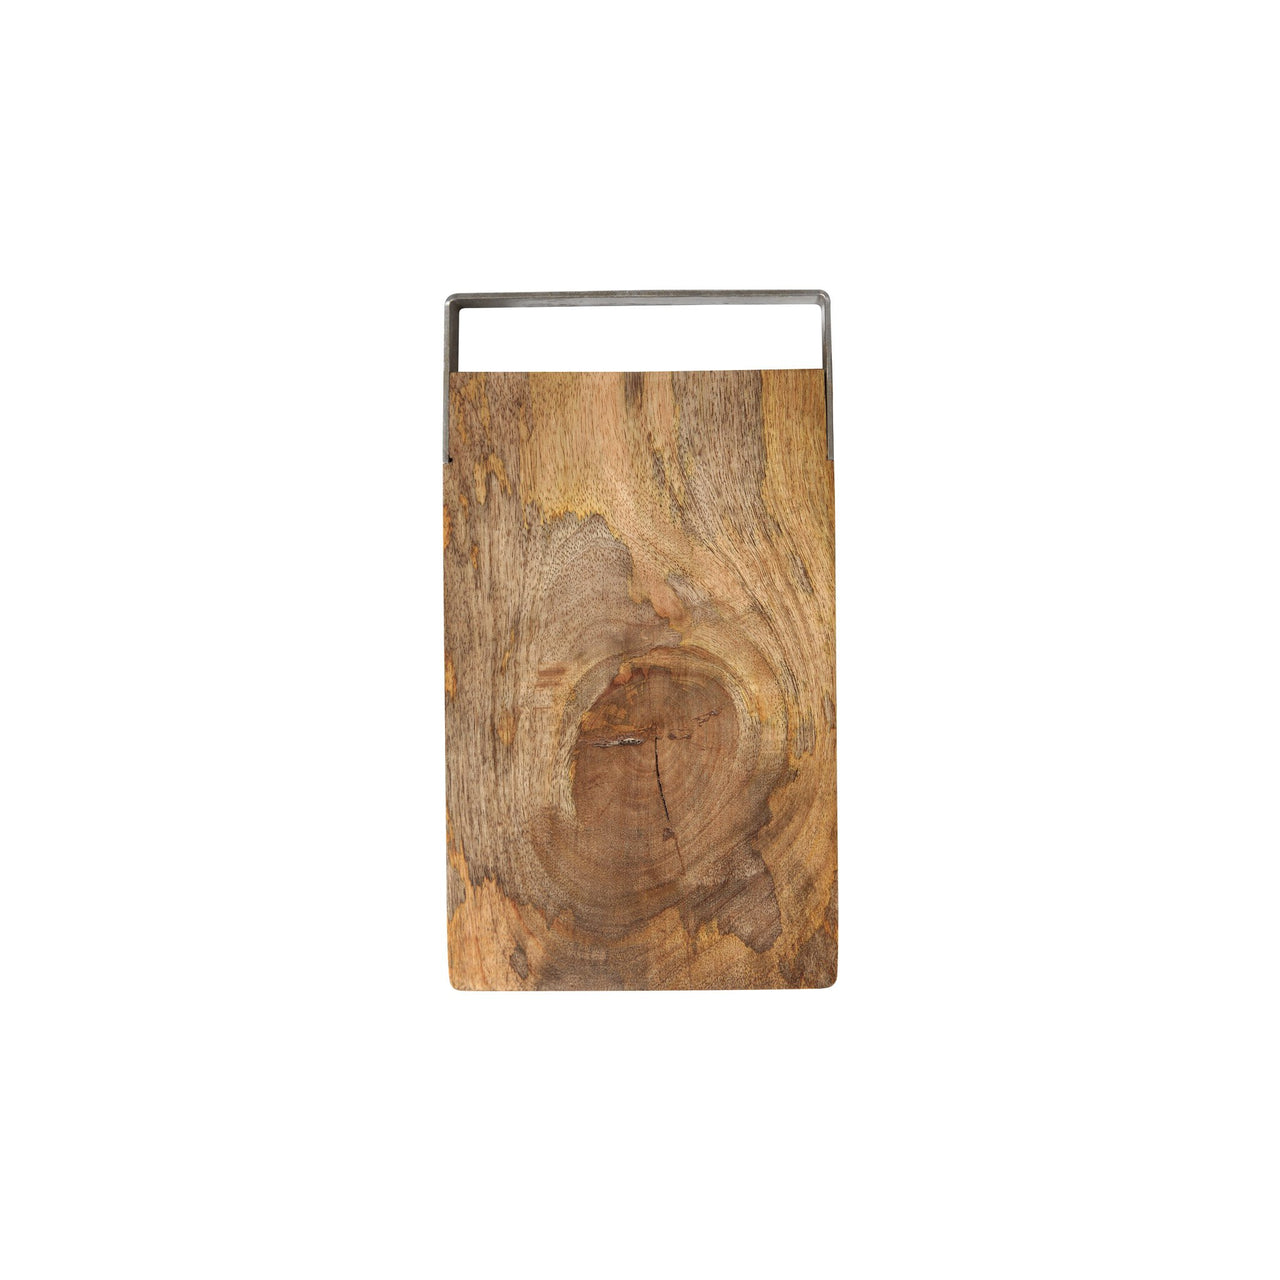 Cutting Board 17x27